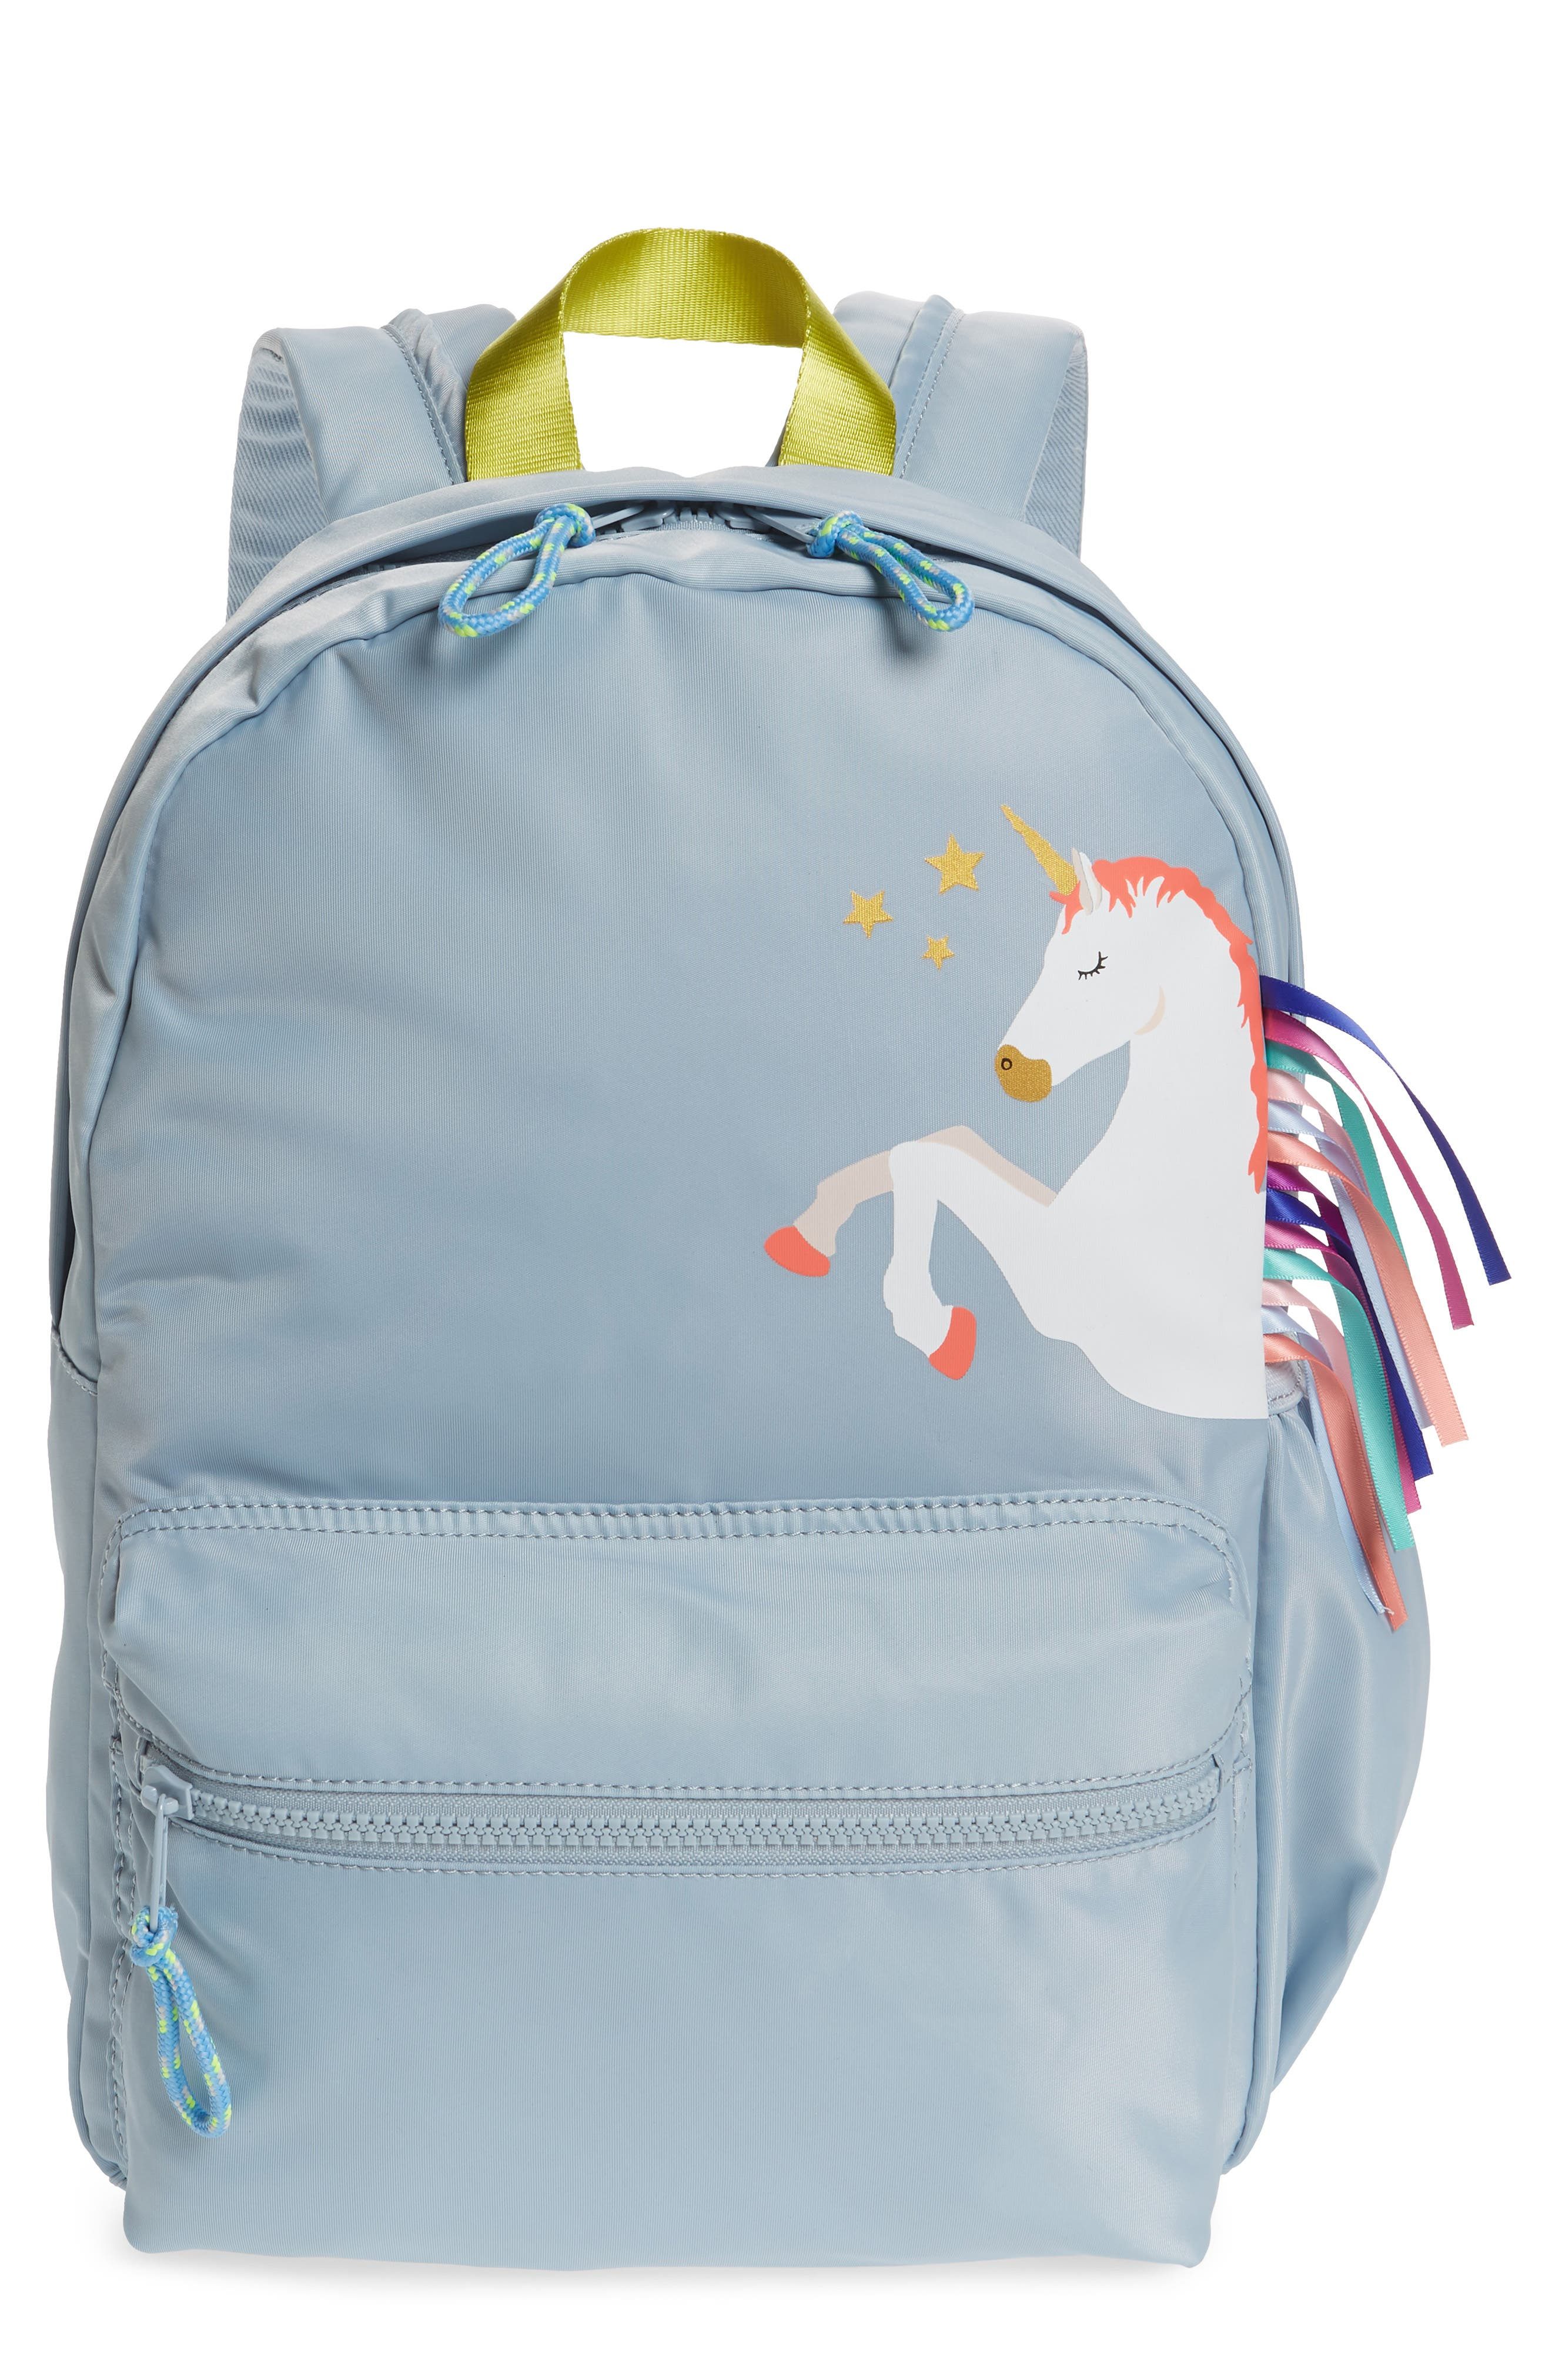 Unicorn Backpack,                         Main,                         color, 500